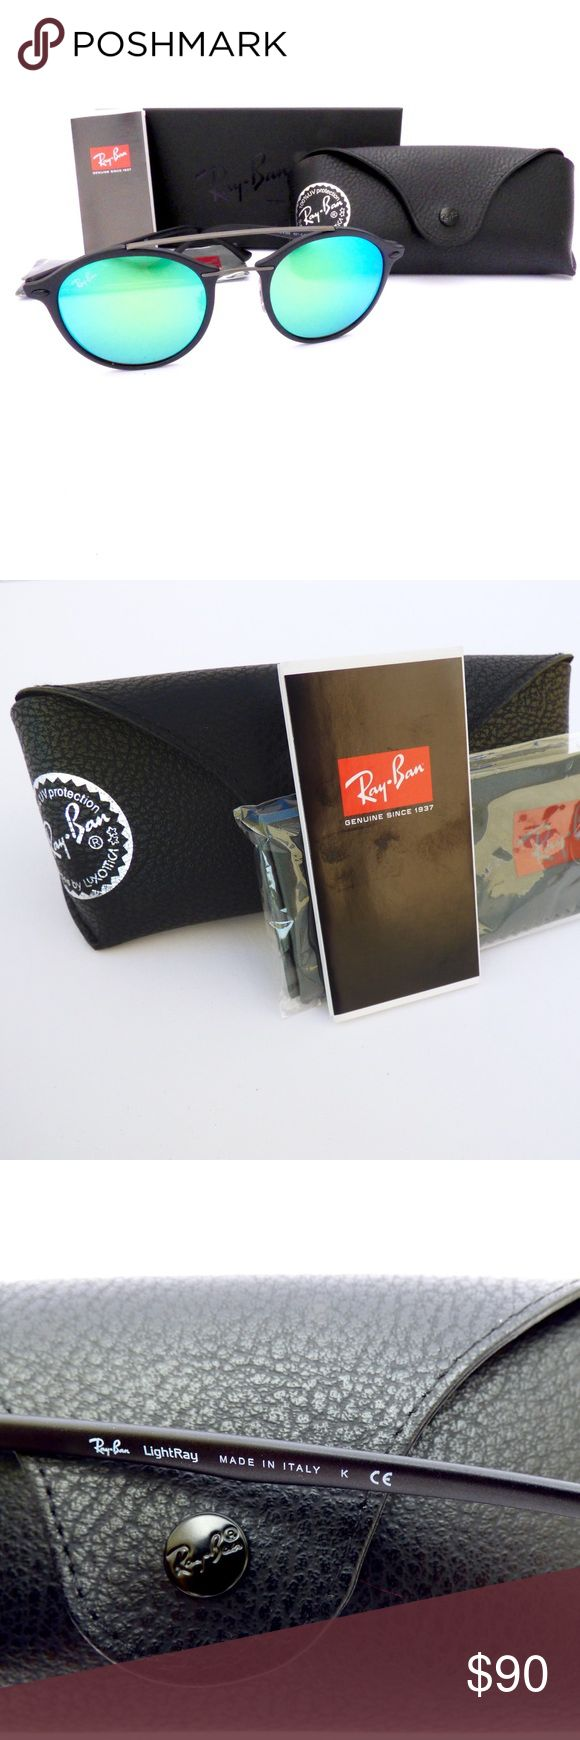 100% Authentic Ray-Ban LightRay Round Sunglasses! Ray-Ban Unisex LightRay Round Sunglasses RB4266 601-S/3R 49/21 140 3N  The LightRay combines advanced technology and innovative material to creat featherweight stylish iconic sunglasses!  100% Authentic. Made in Italy. Covered Ray-Ban Limited Lifetime Warranty.  Model:RB4266 601-S/3R Eye:49 Bridge:21 Temple:140 Lens Tech:Anti-Reflection Lens Color:Green Mirrored Style:Round Frame Color/Material:Black/Plastic  Comes with Black Leather Case…